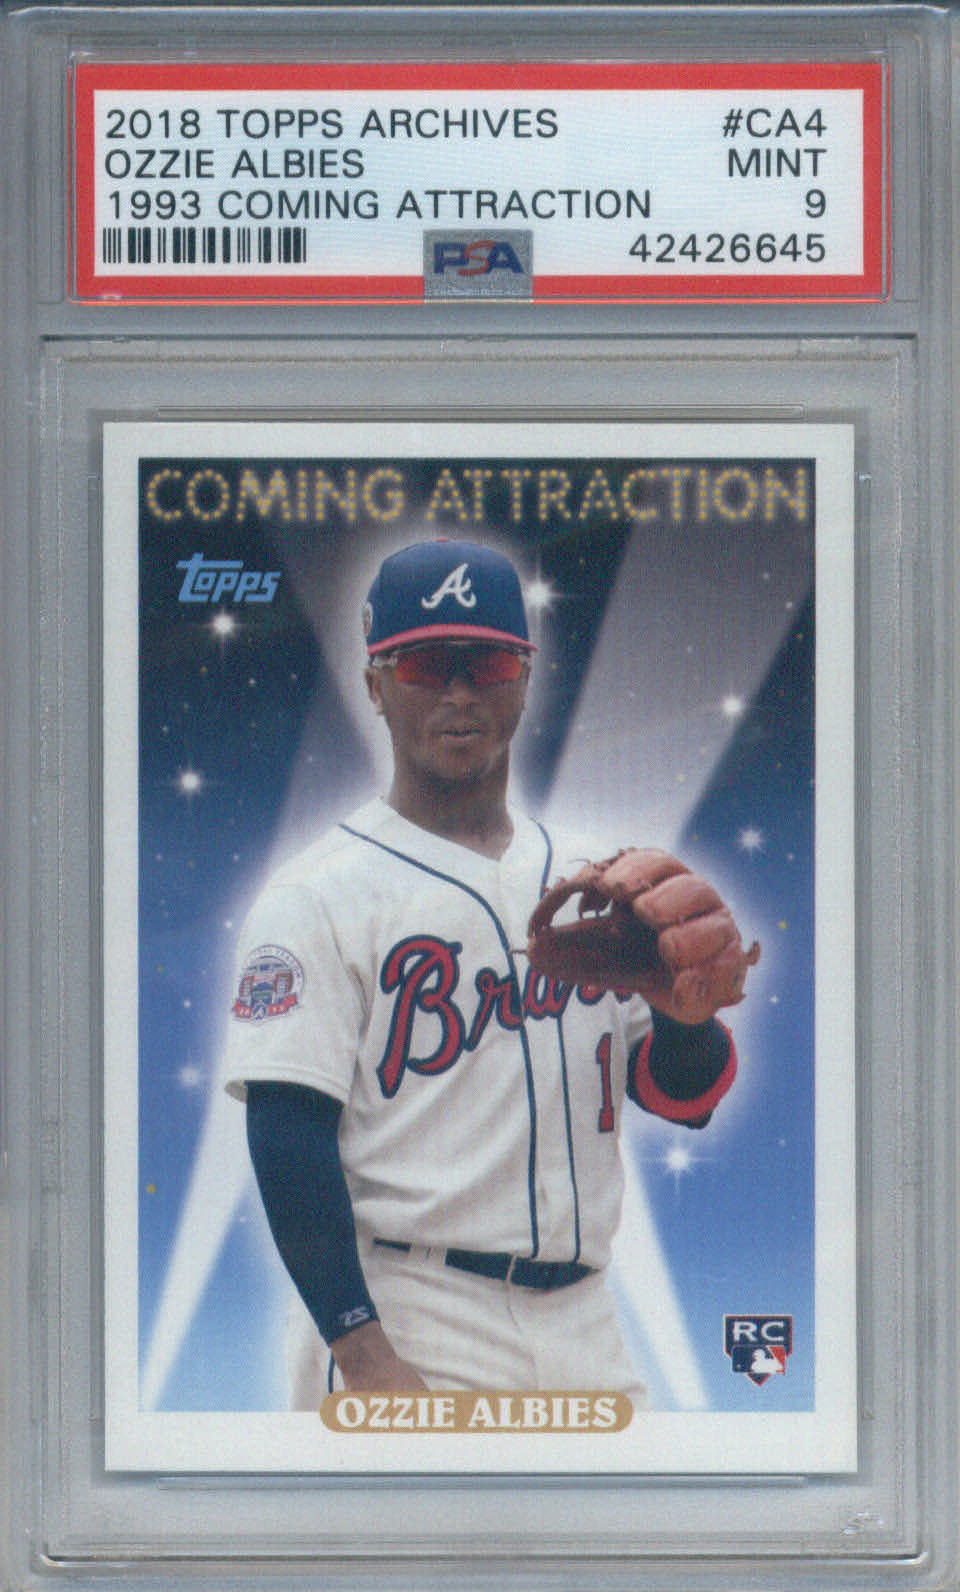 2018 Topps Archives 1993 Coming Attraction RC #CA4 Ozzie Albies PSA 9